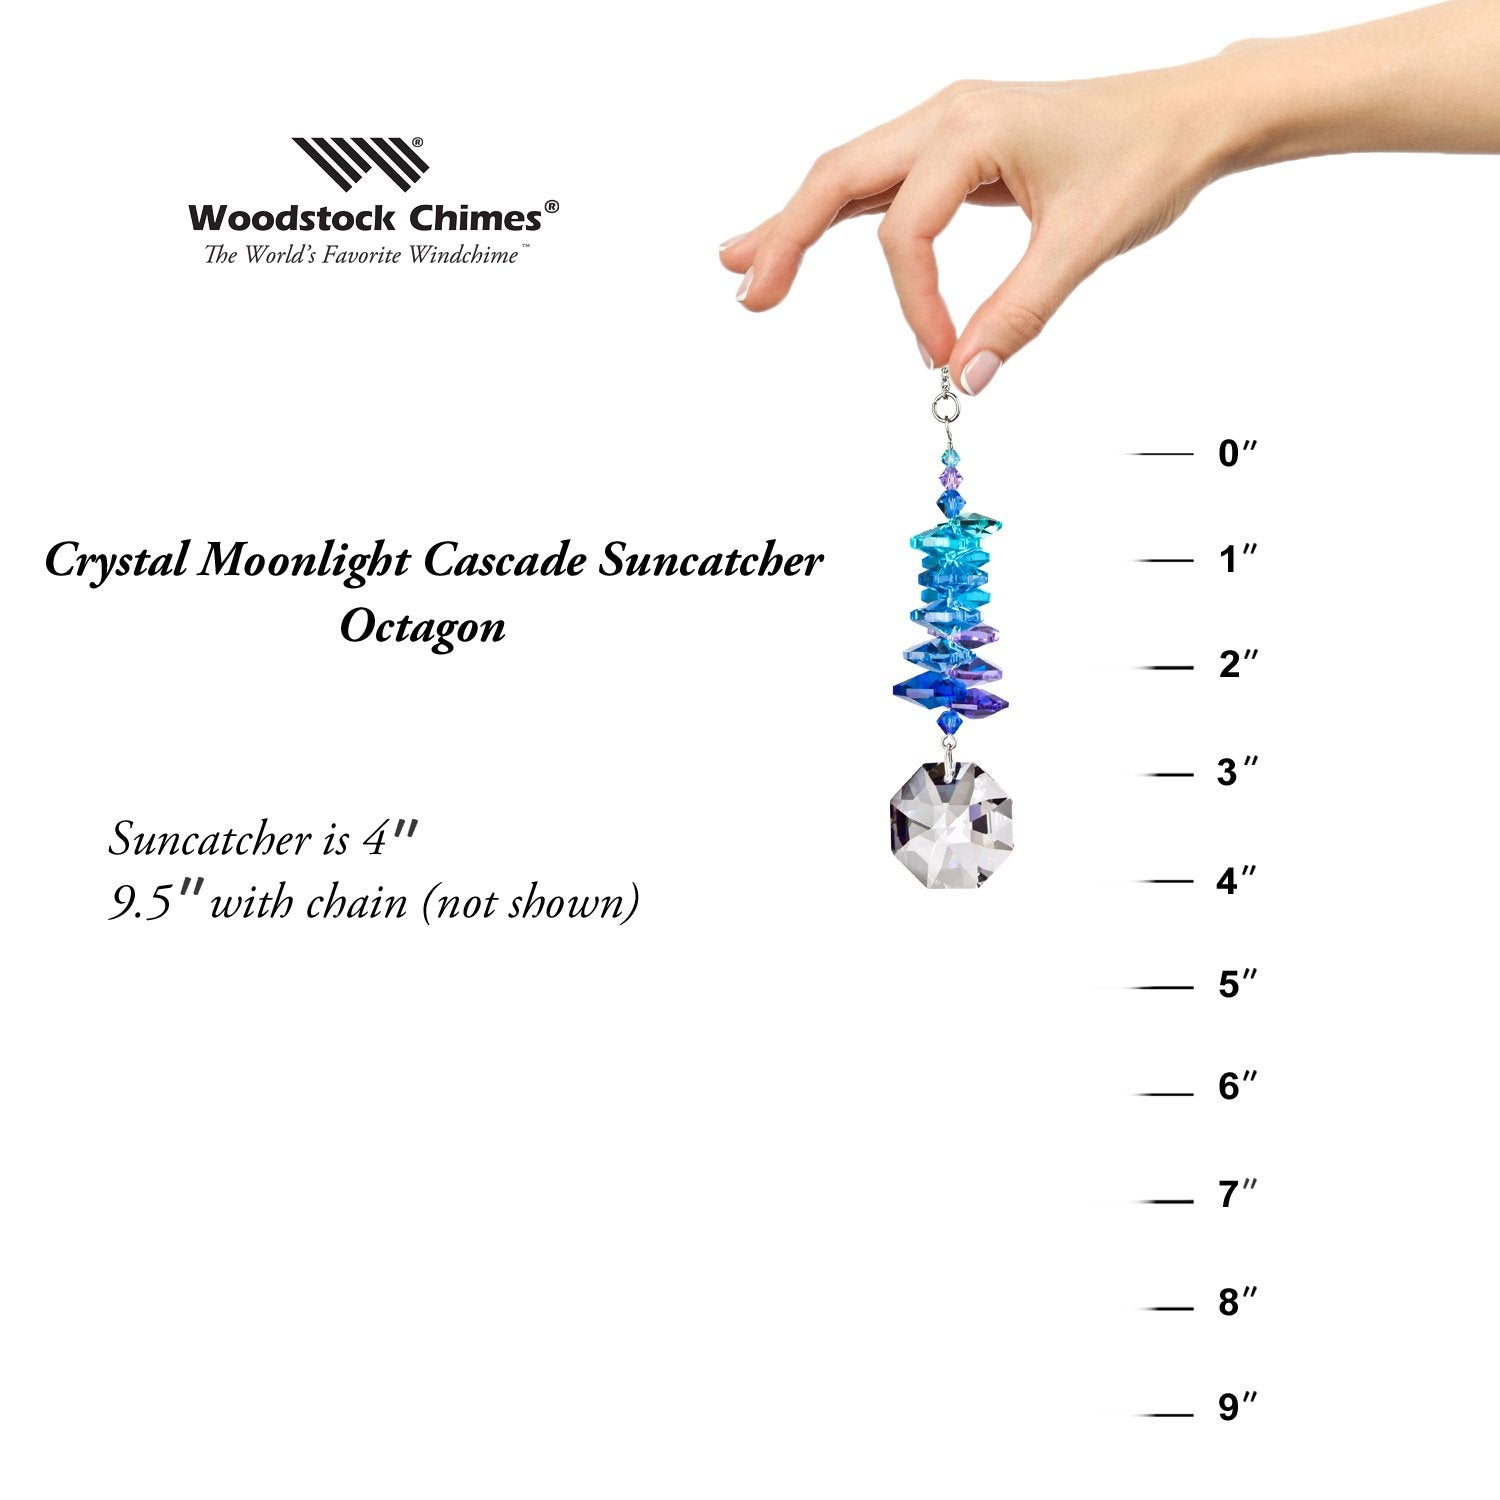 Crystal Moonlight Cascade Suncatcher - Octagon proportion image